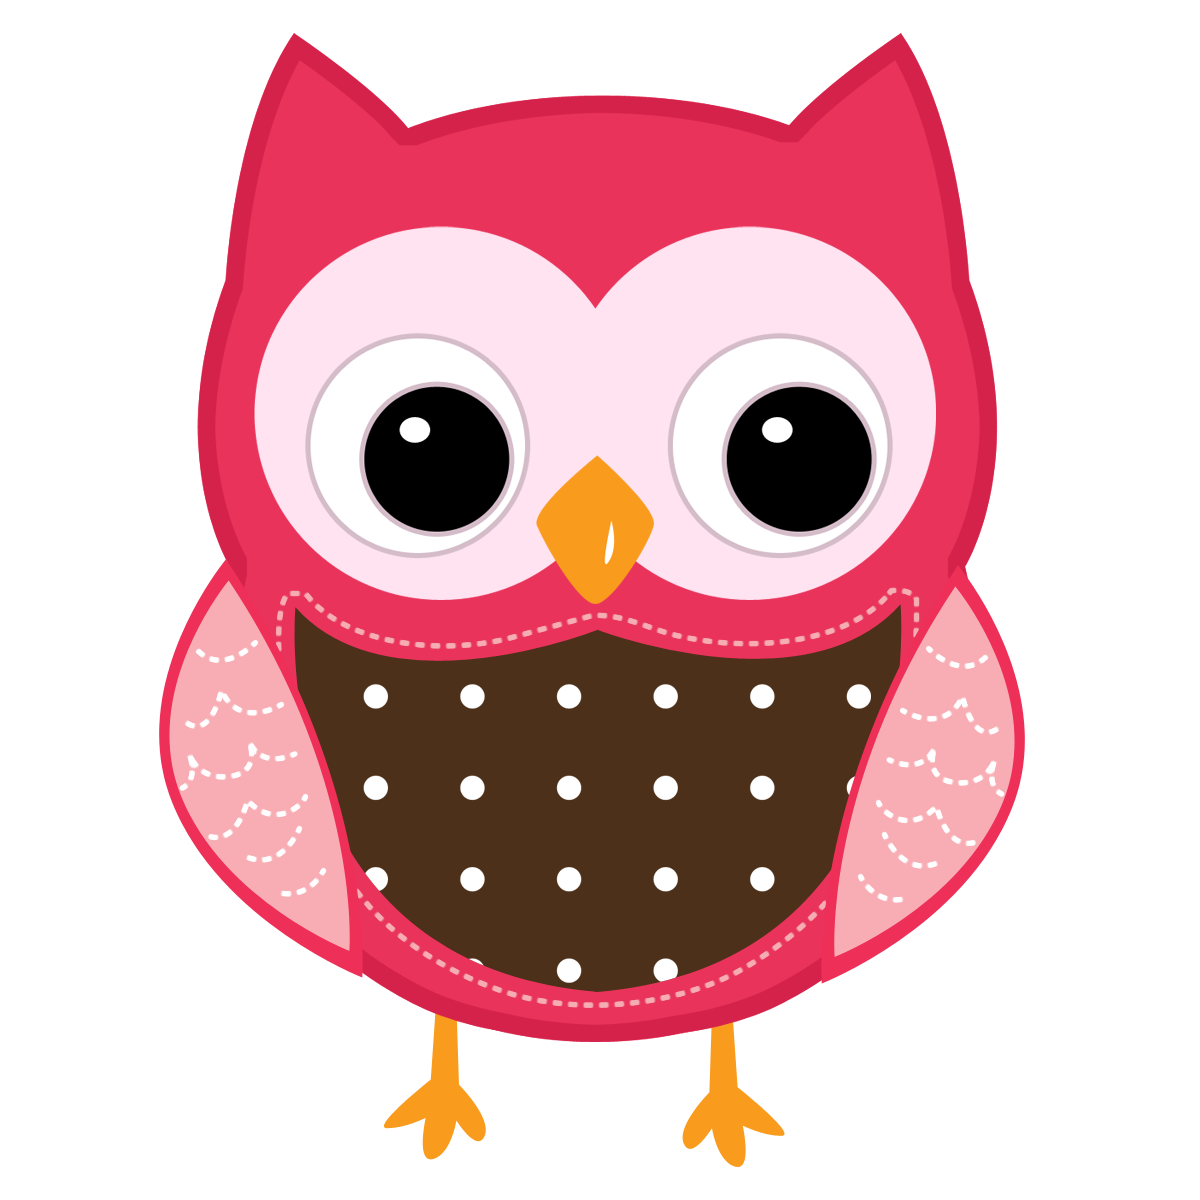 Owl clipart #2, Download drawings